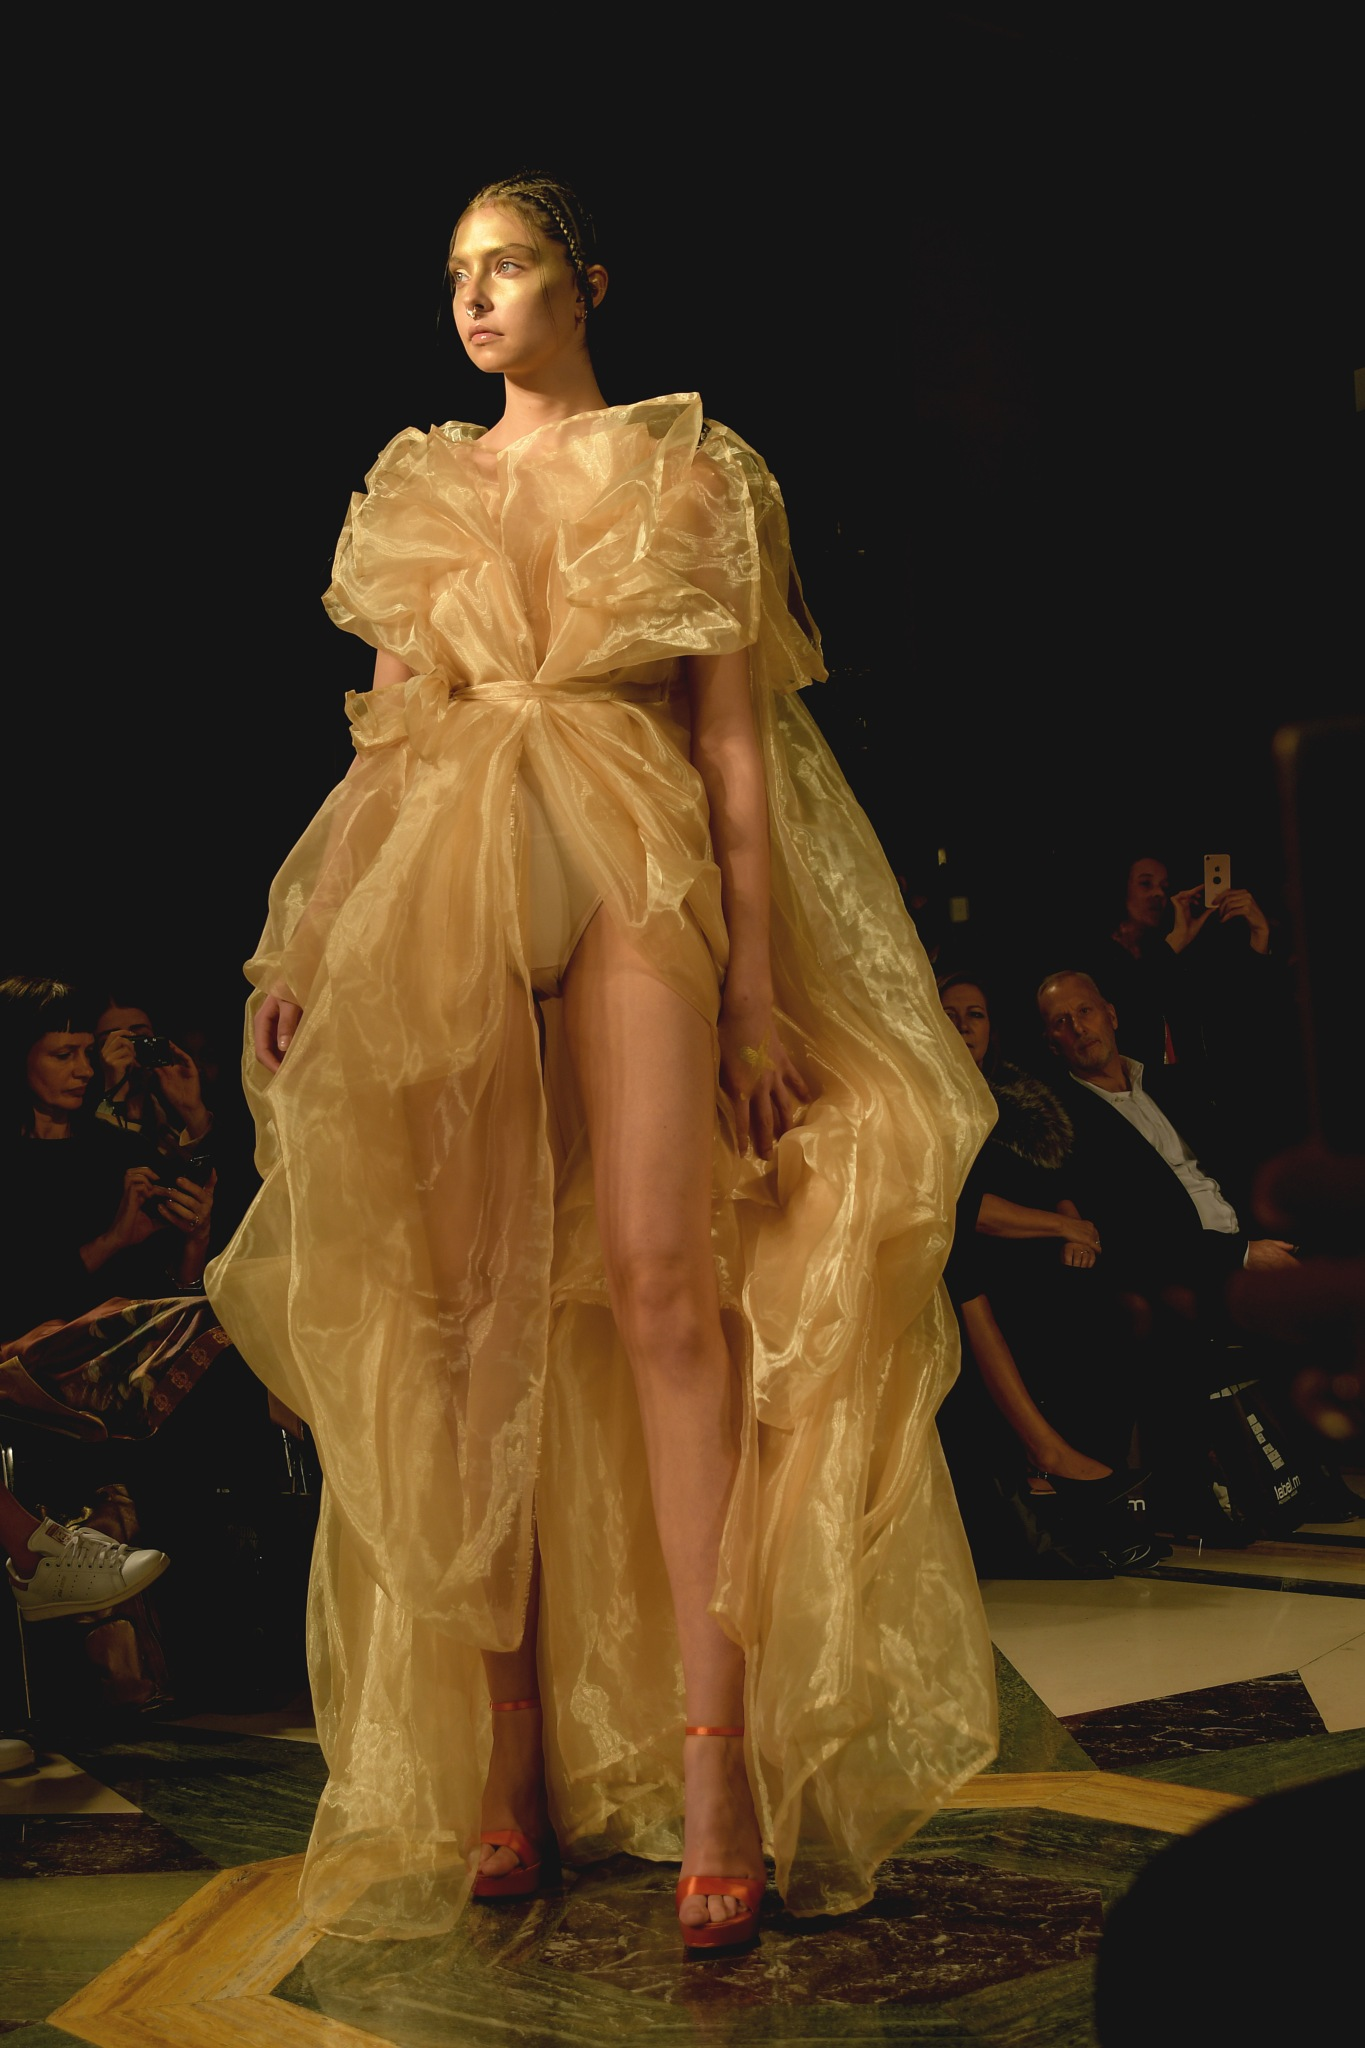 Ilove it! from the lastes Fashion show in london covent garden by Swainuk